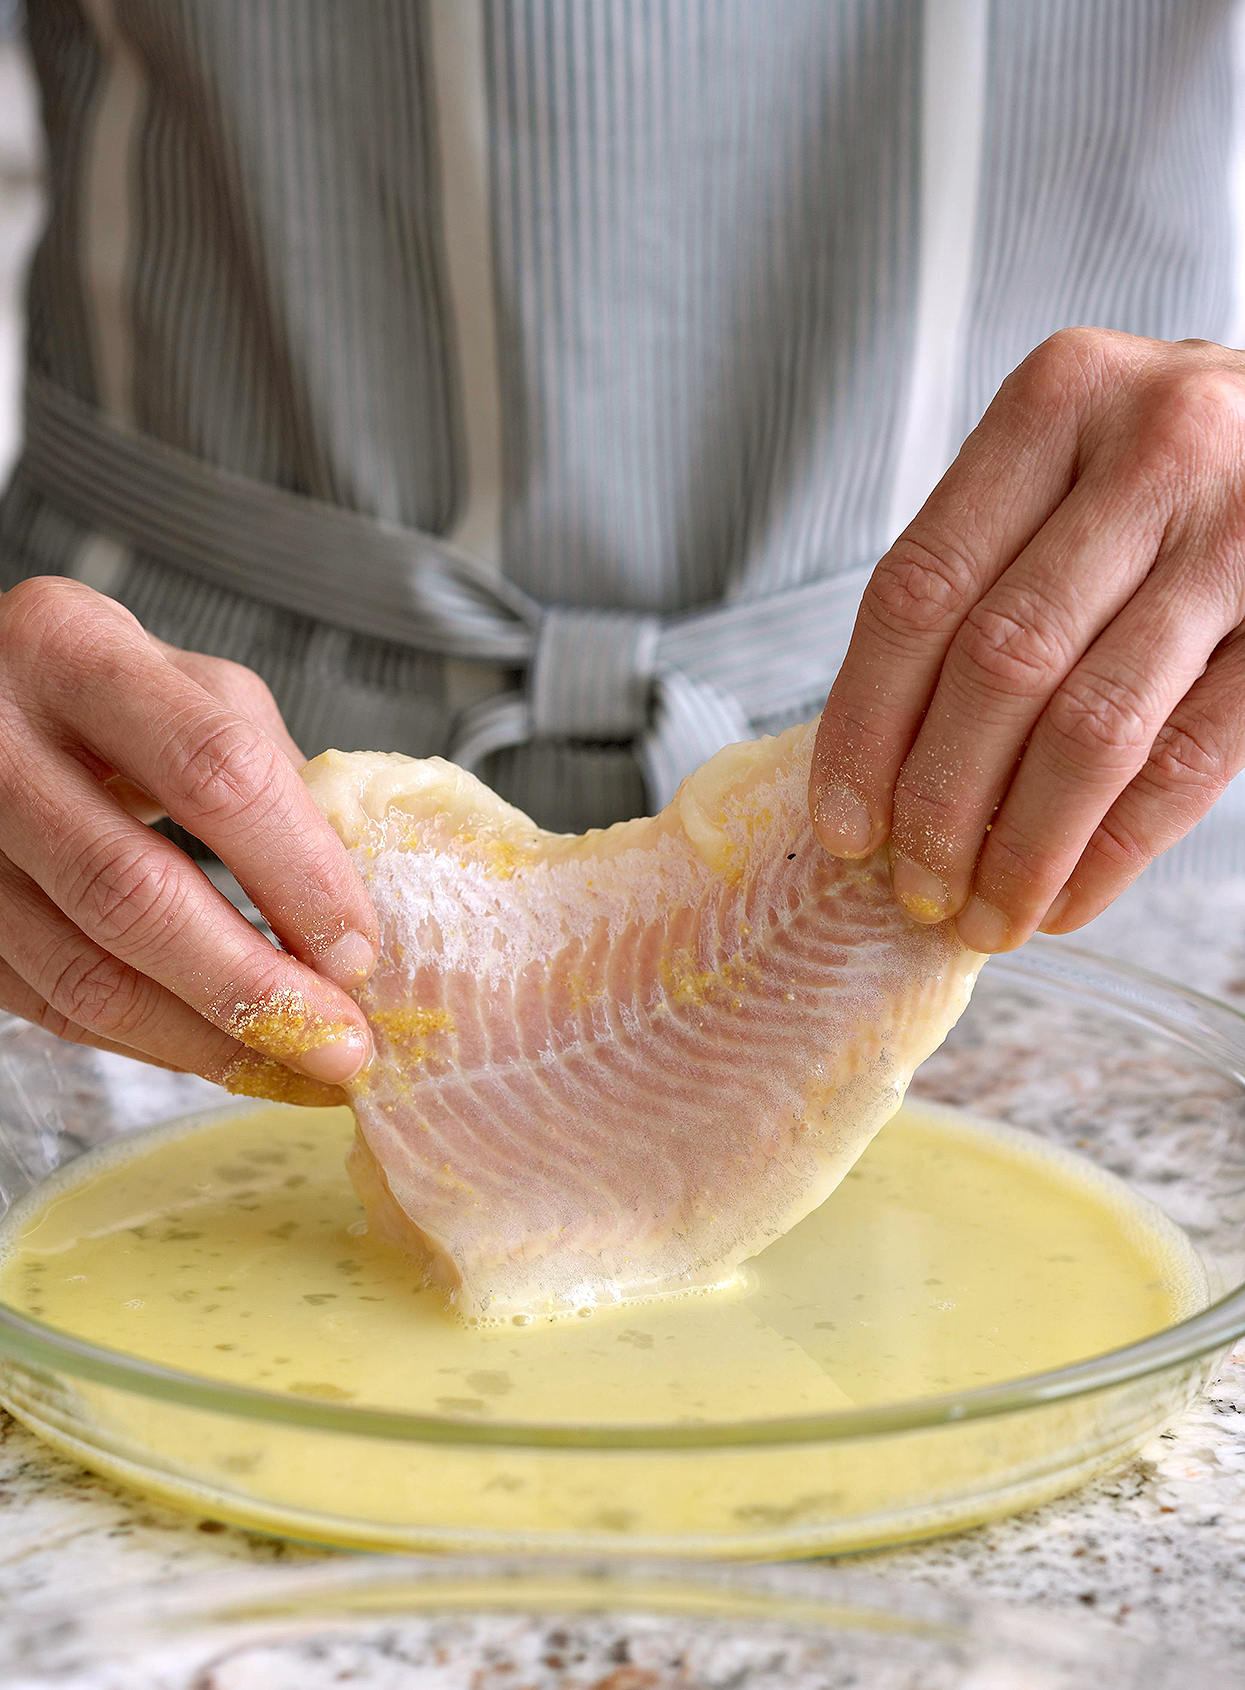 dipping fish fillet in egg mixture to coat